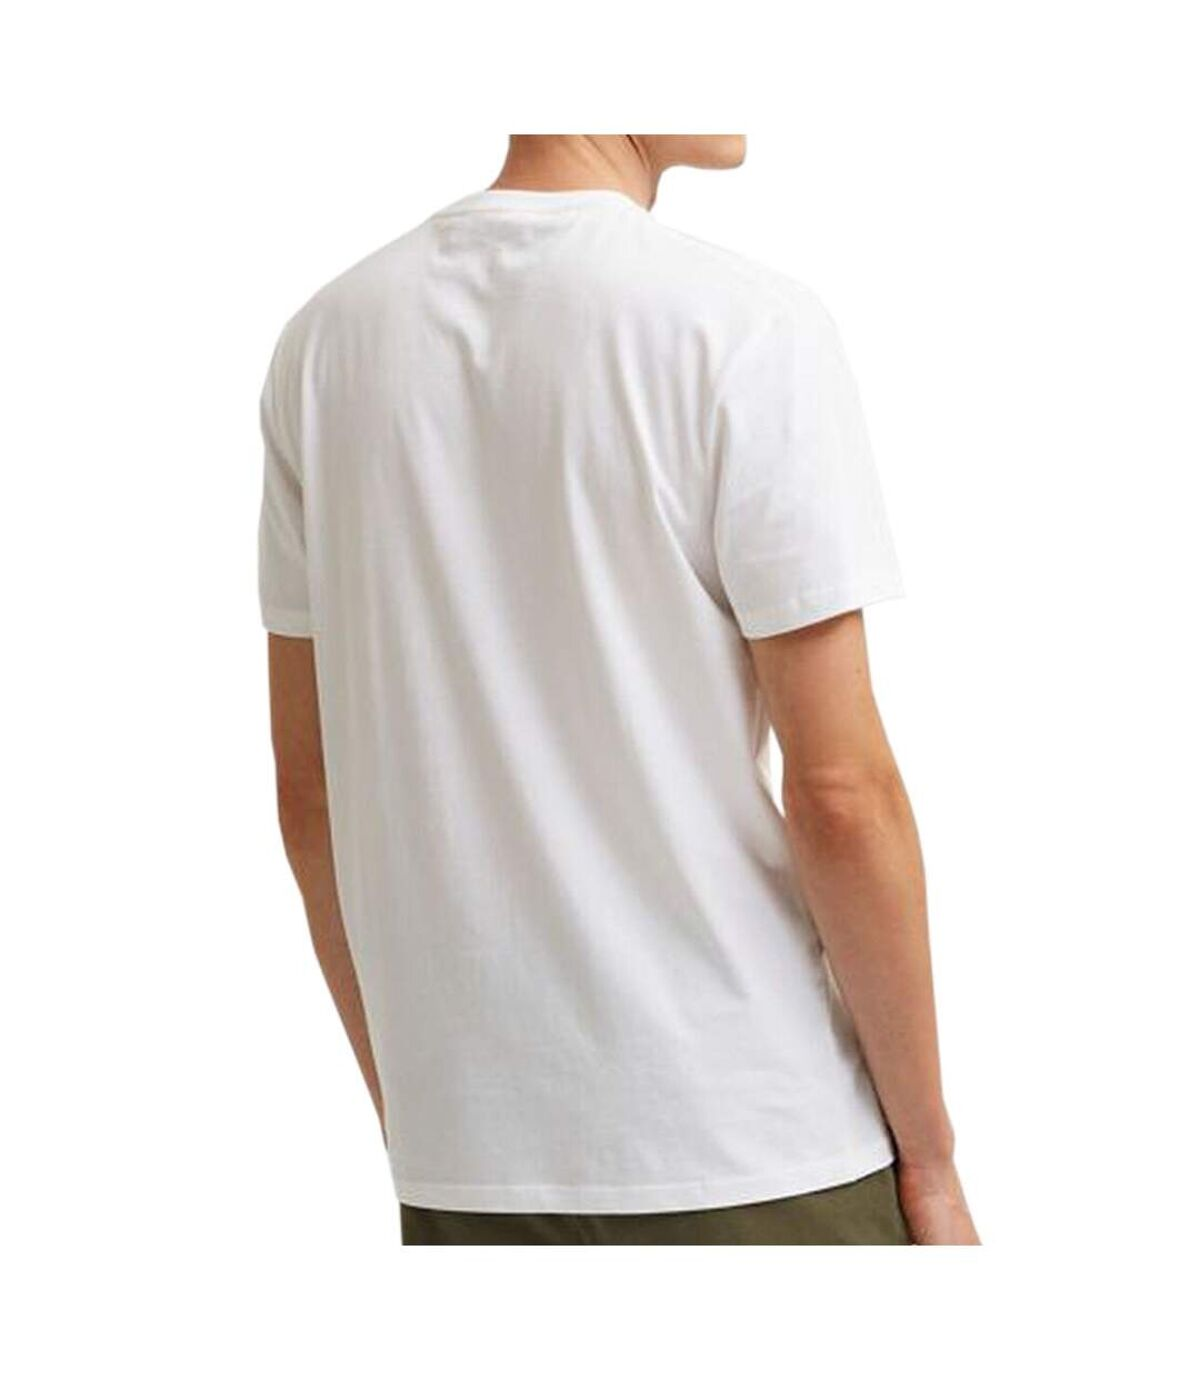 T-shirt Blanc Homme Selected Fate